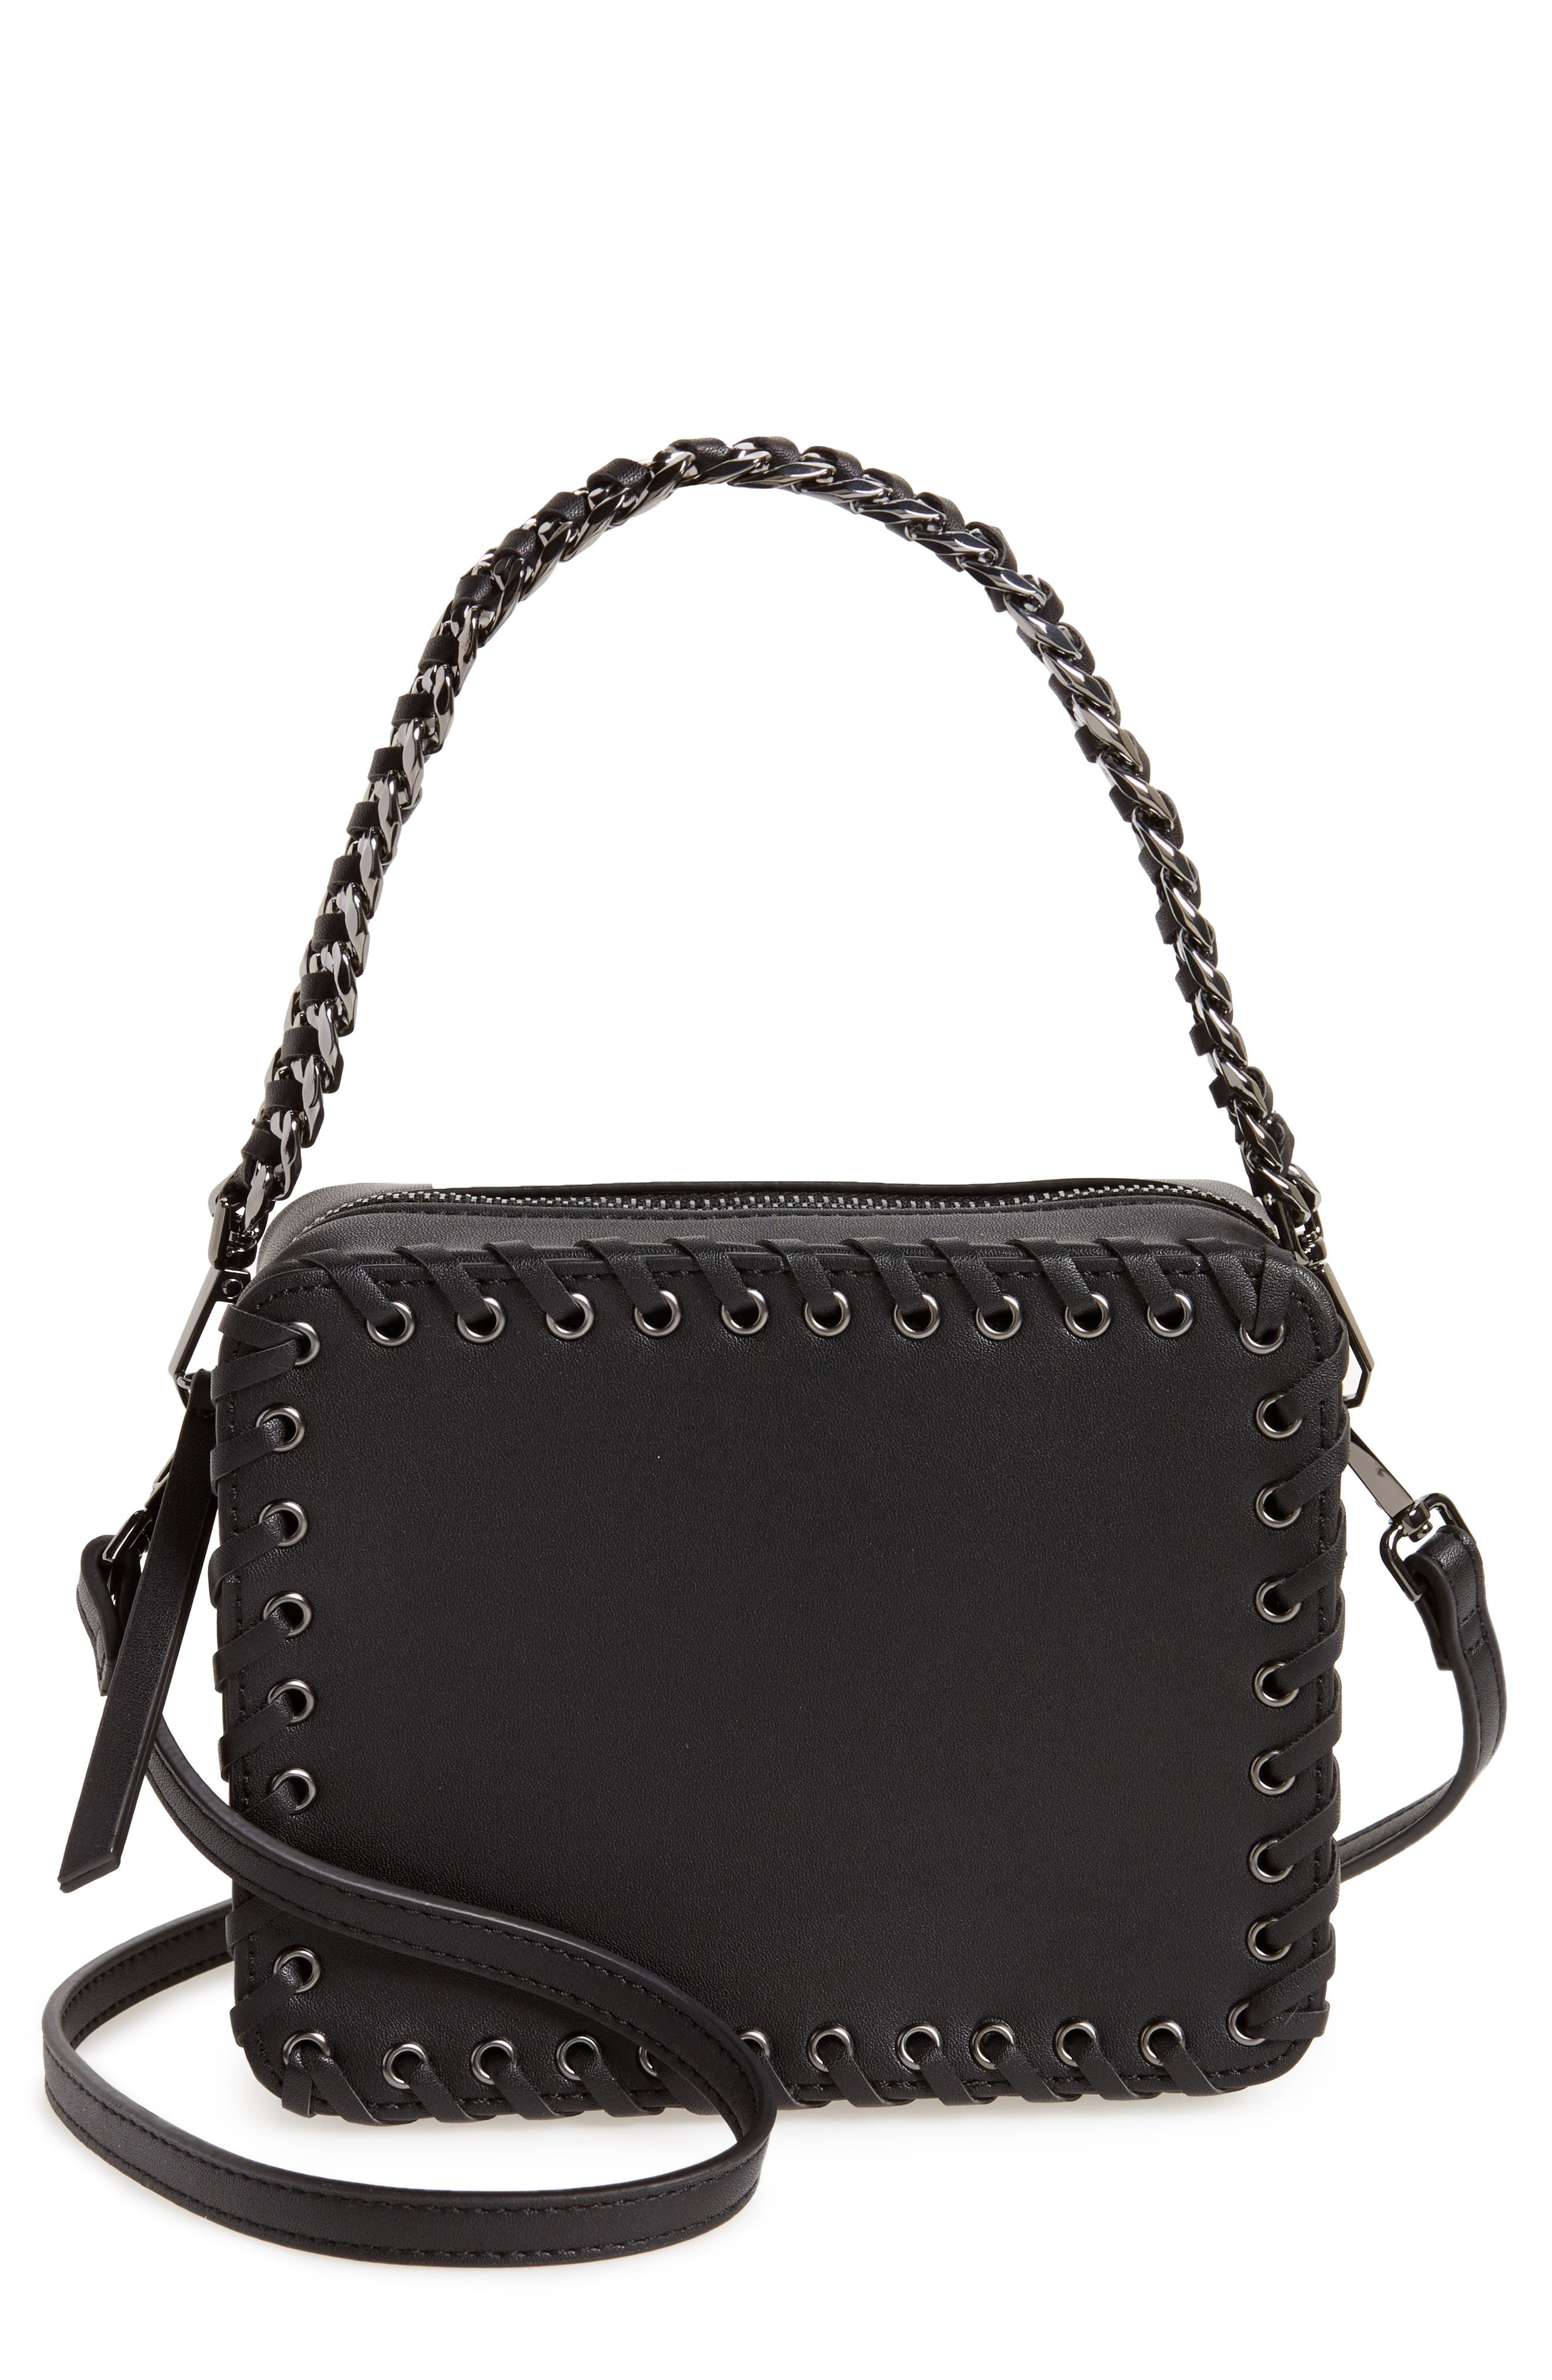 Main Image - Topshop Rogue Whipstitch Faux Leather Crossbody Bag